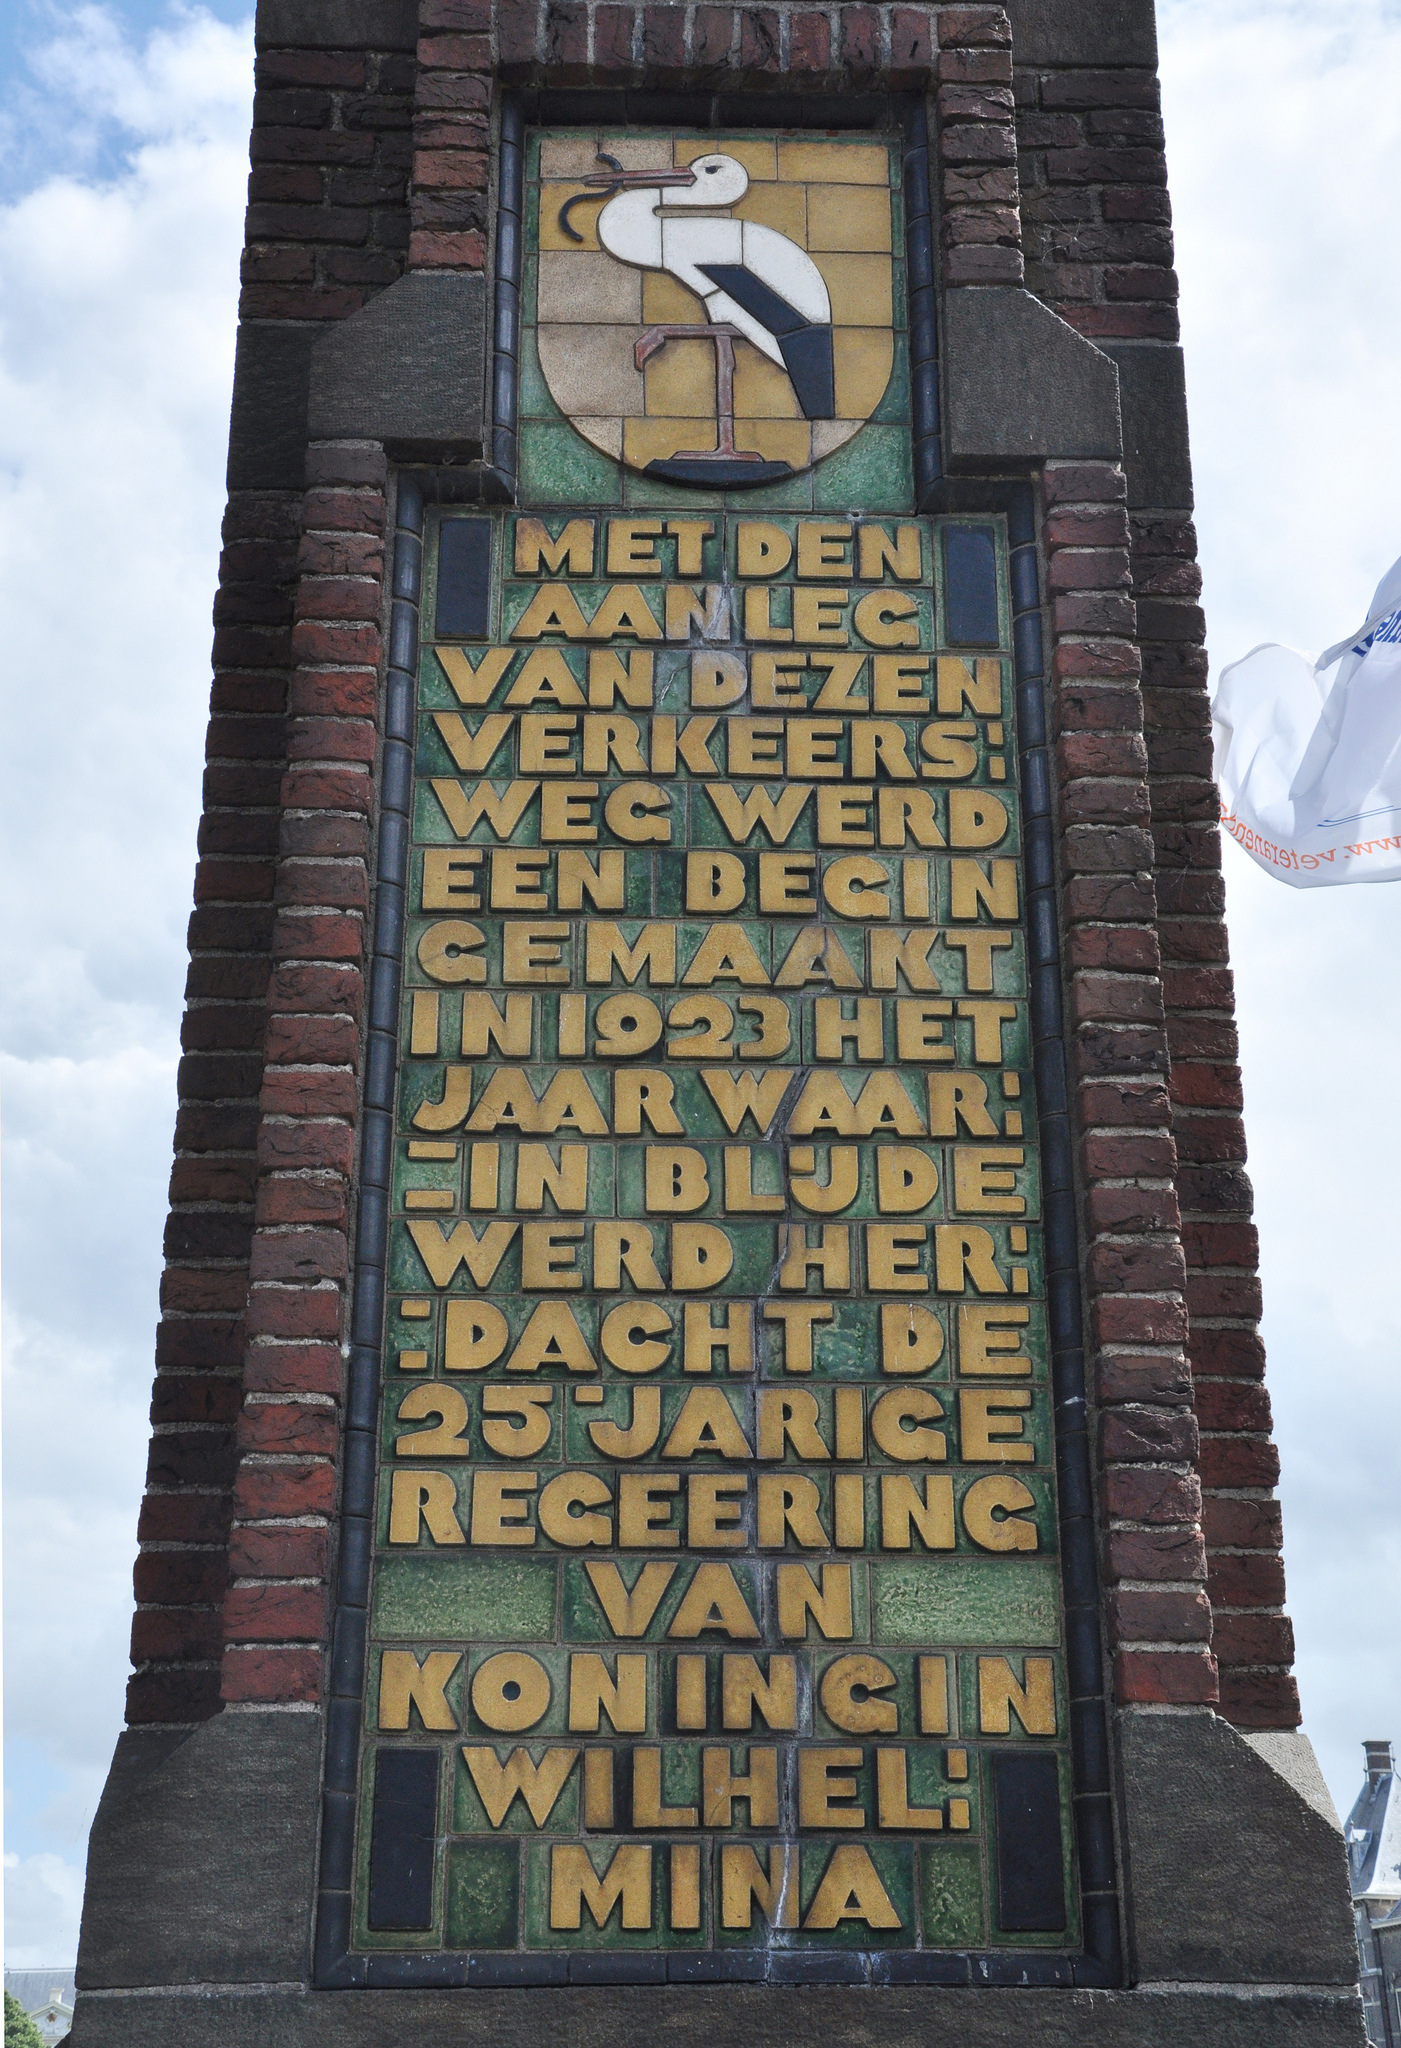 A photograph of the original monument on the Buitenhof in The Hague, a memorial plaque designed by Berlage and with lettering by Piet Zwart. This lettering is the source of the typeface Monumental Grotesk.